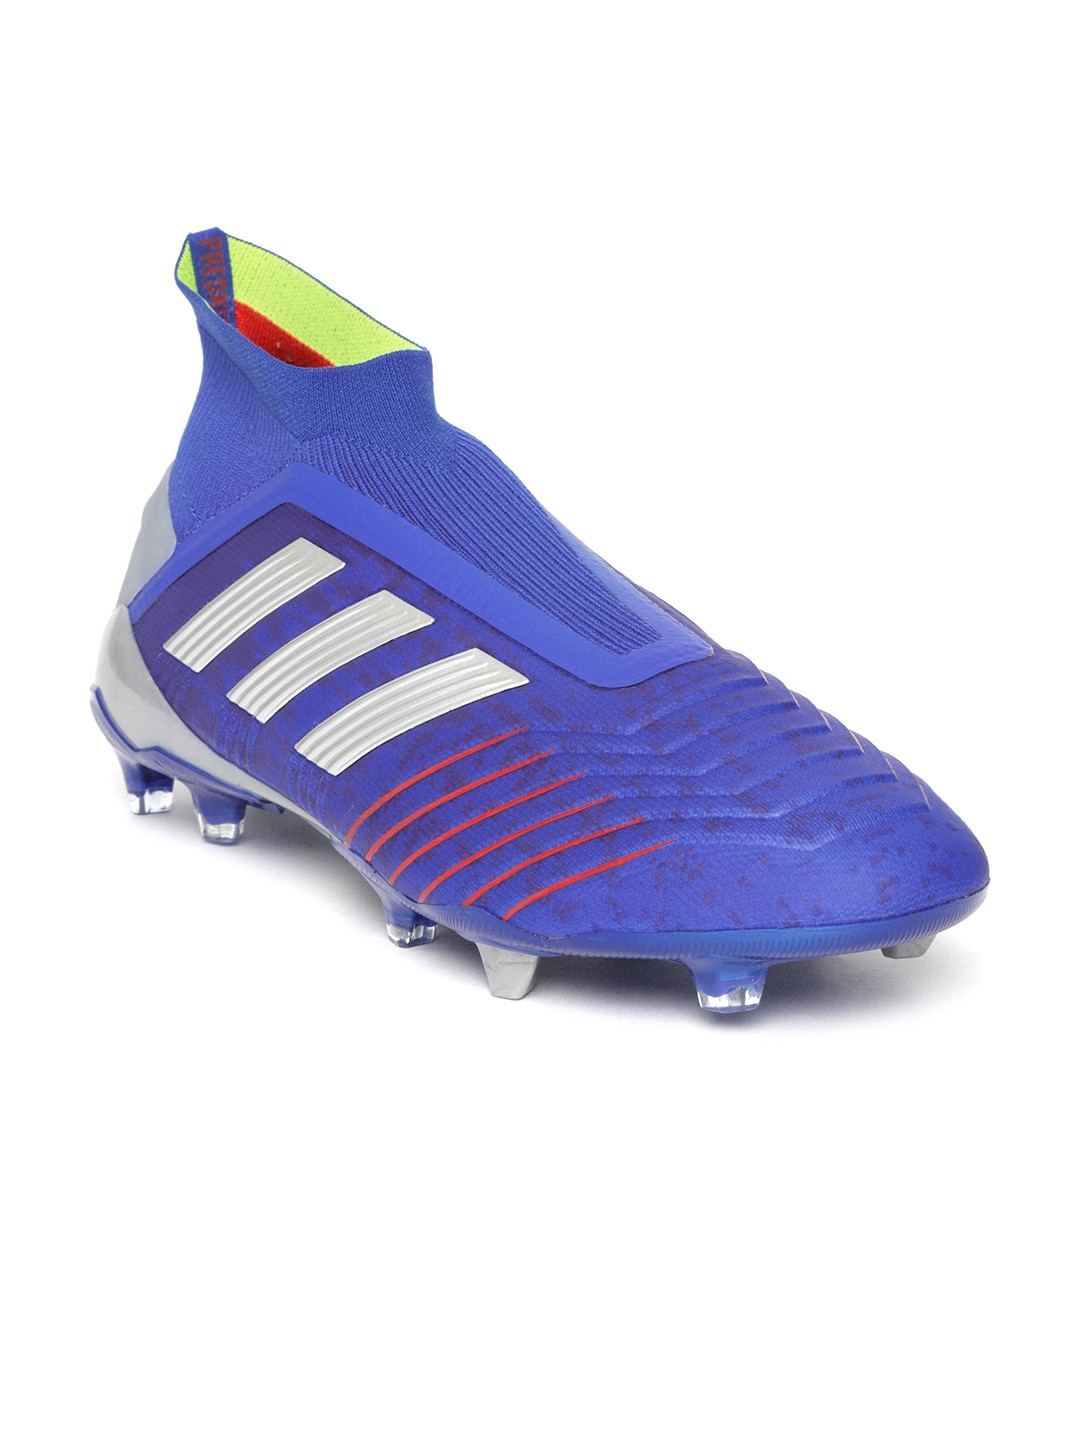 new arrival 9ec1b 696a3 Football Shoes - Buy Football Studs Online for Men  Women in